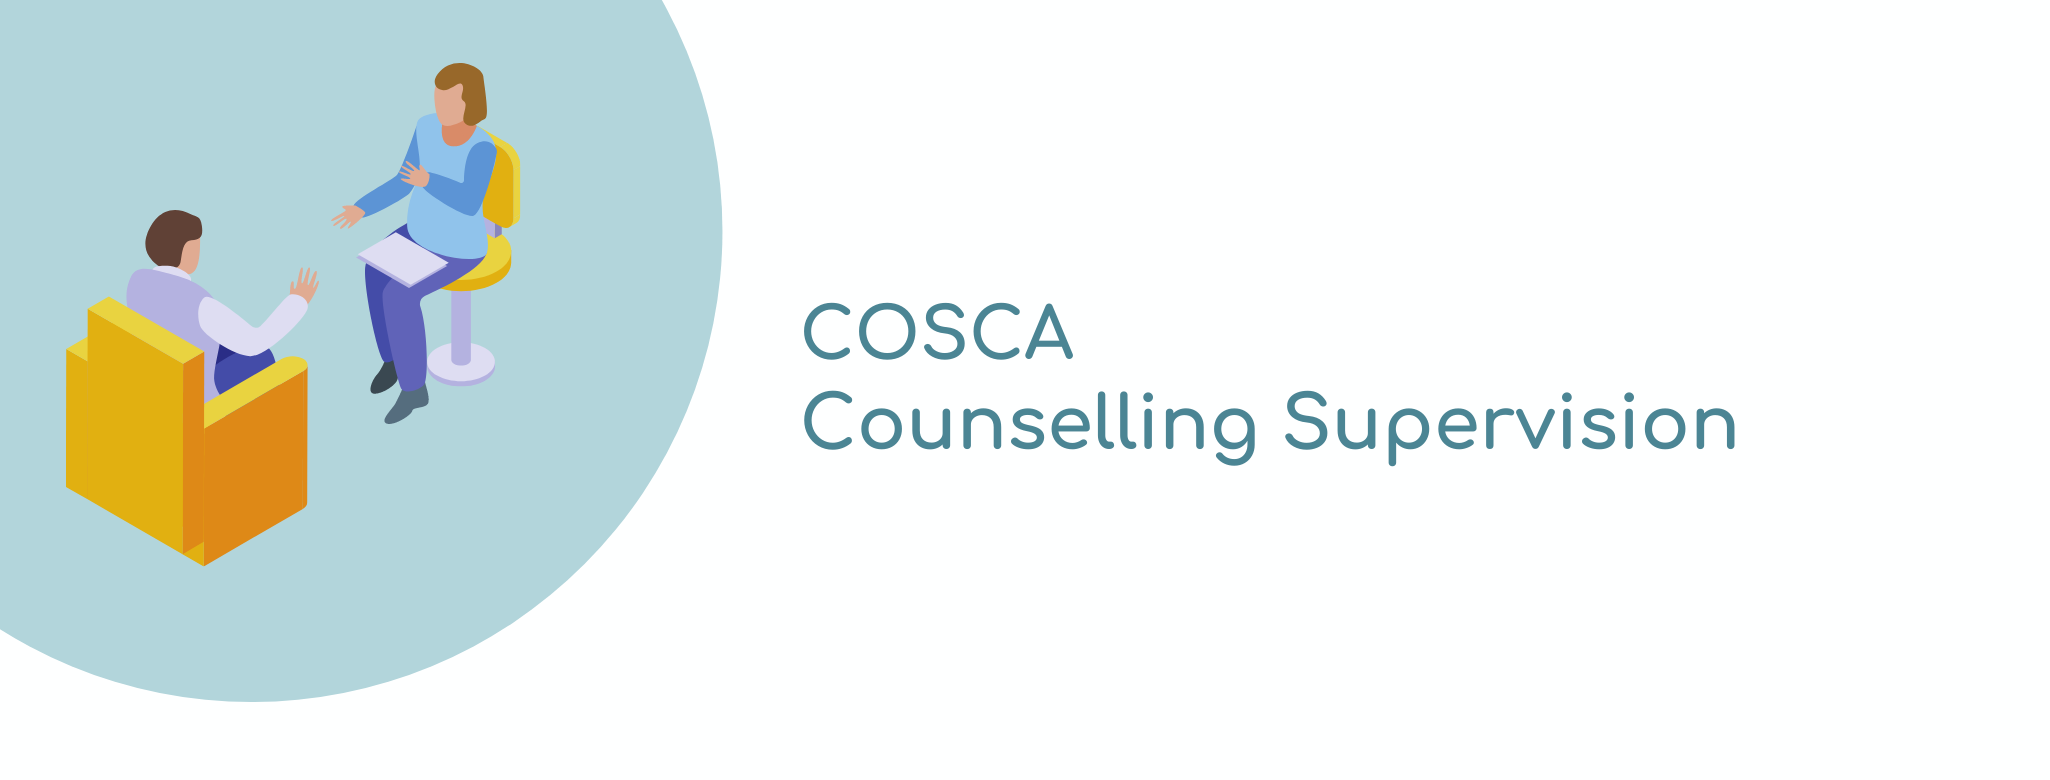 gca-cosca-counselling-supervision